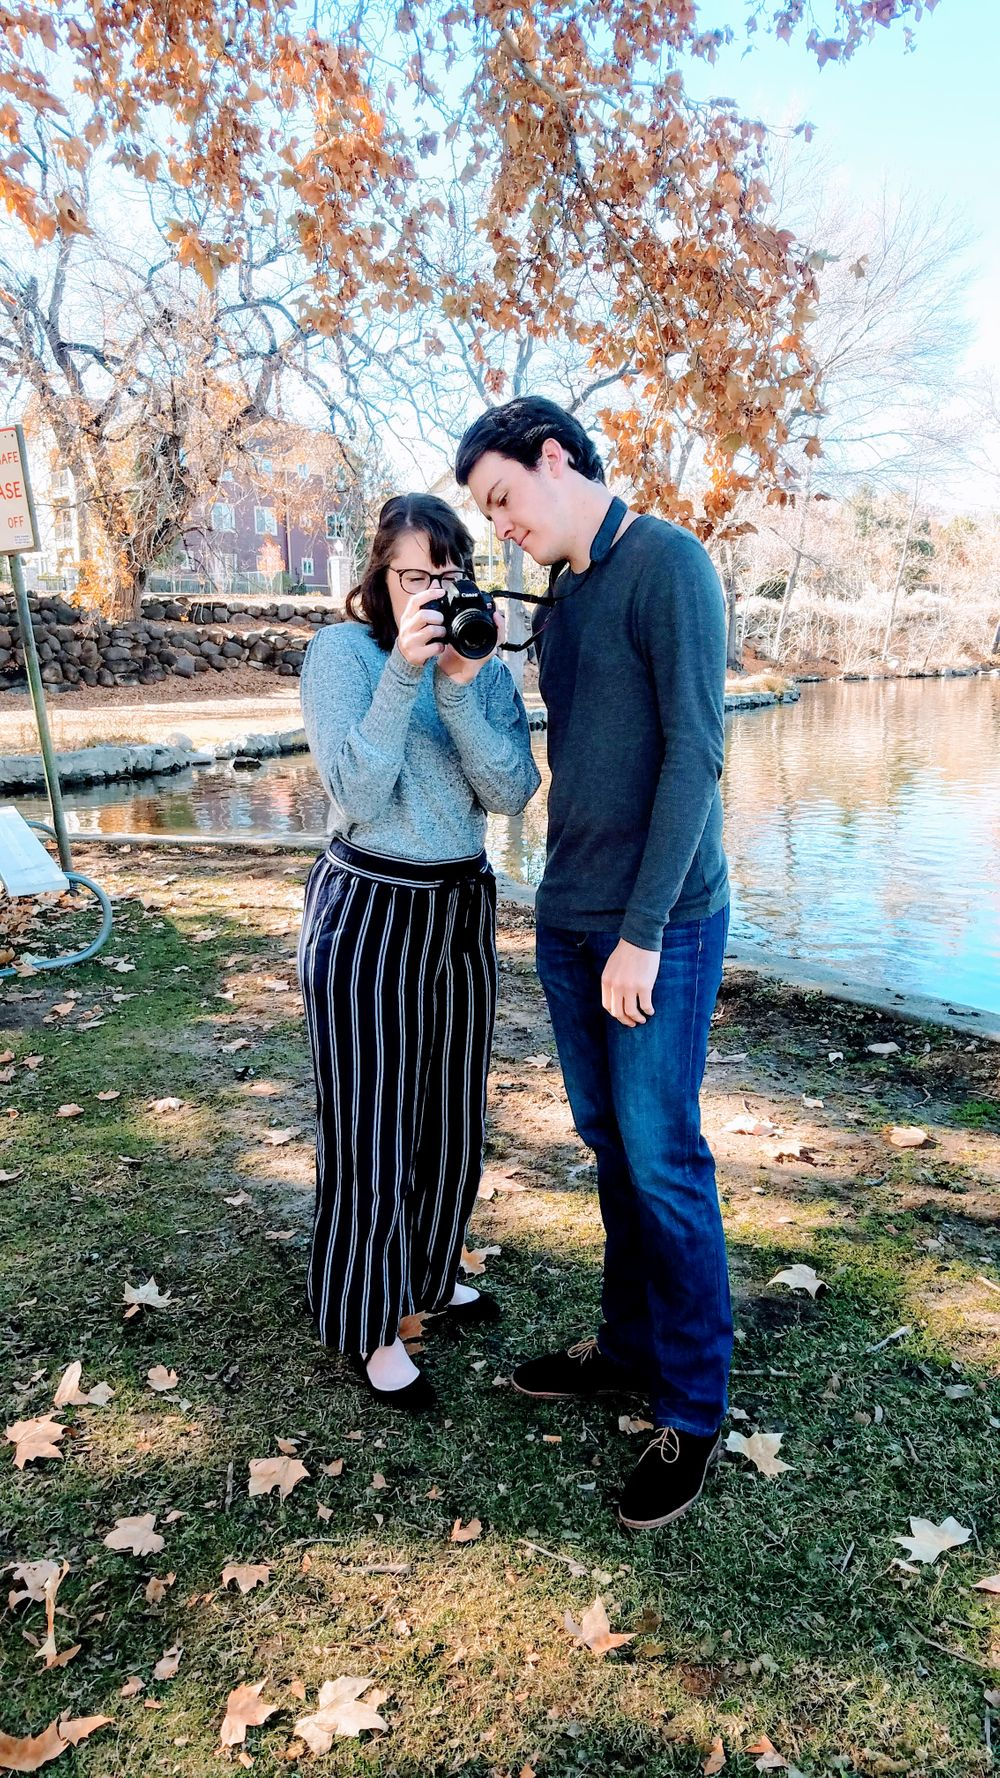 Brother and sister looking at photos on a DSLR camera standing in Fall foliage